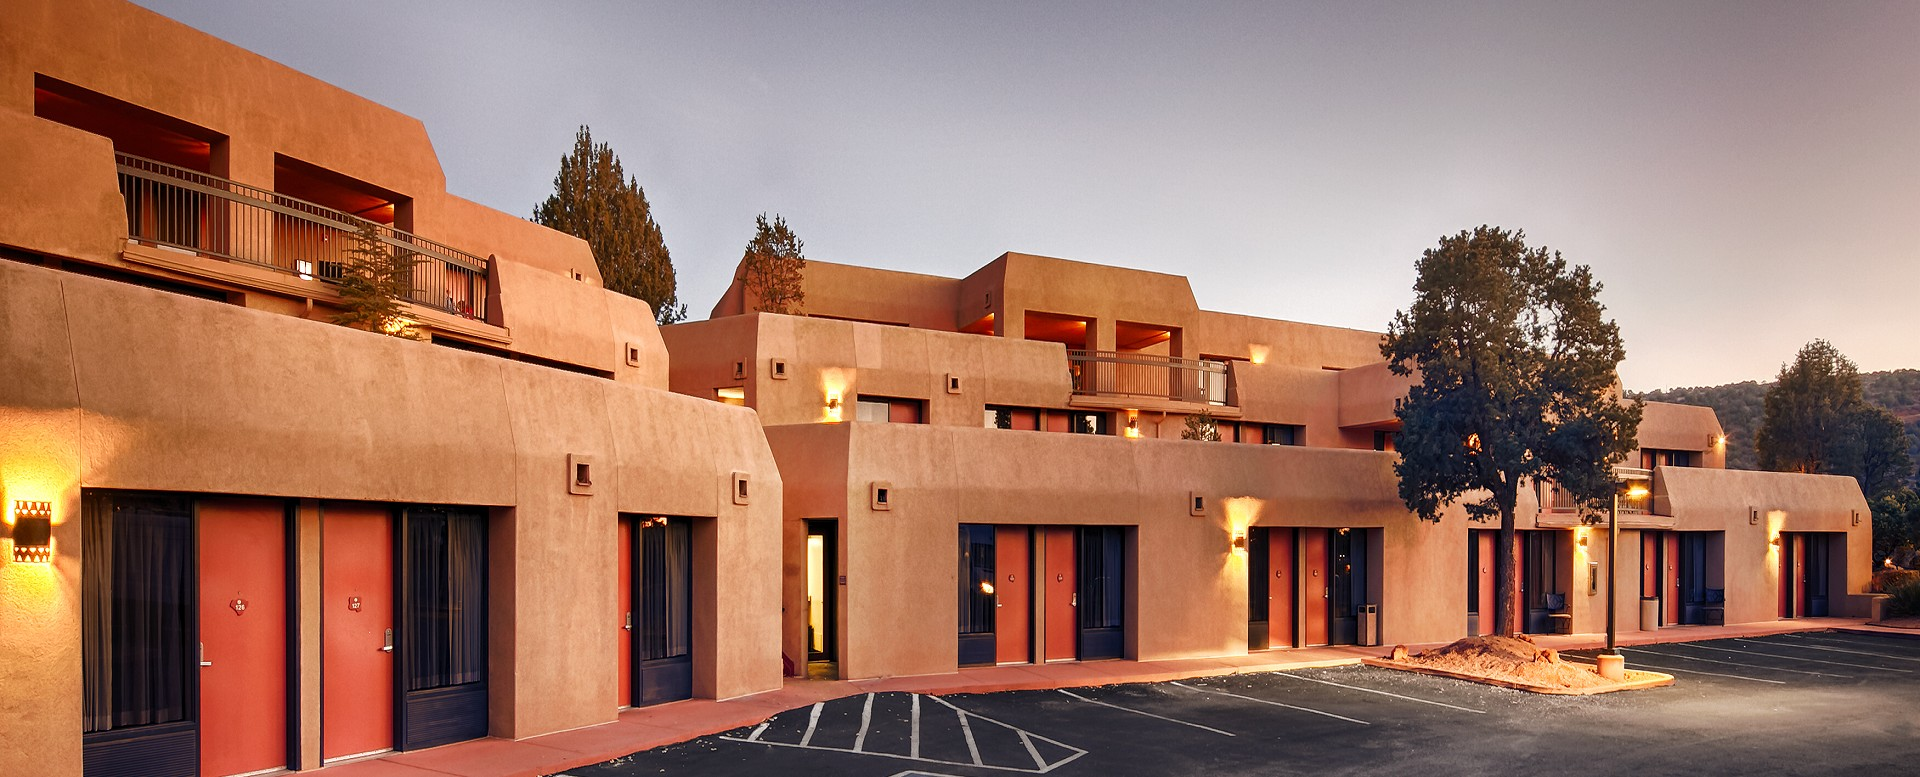 Best Western Plus Inn of Sedona-Guestroom Exteriors